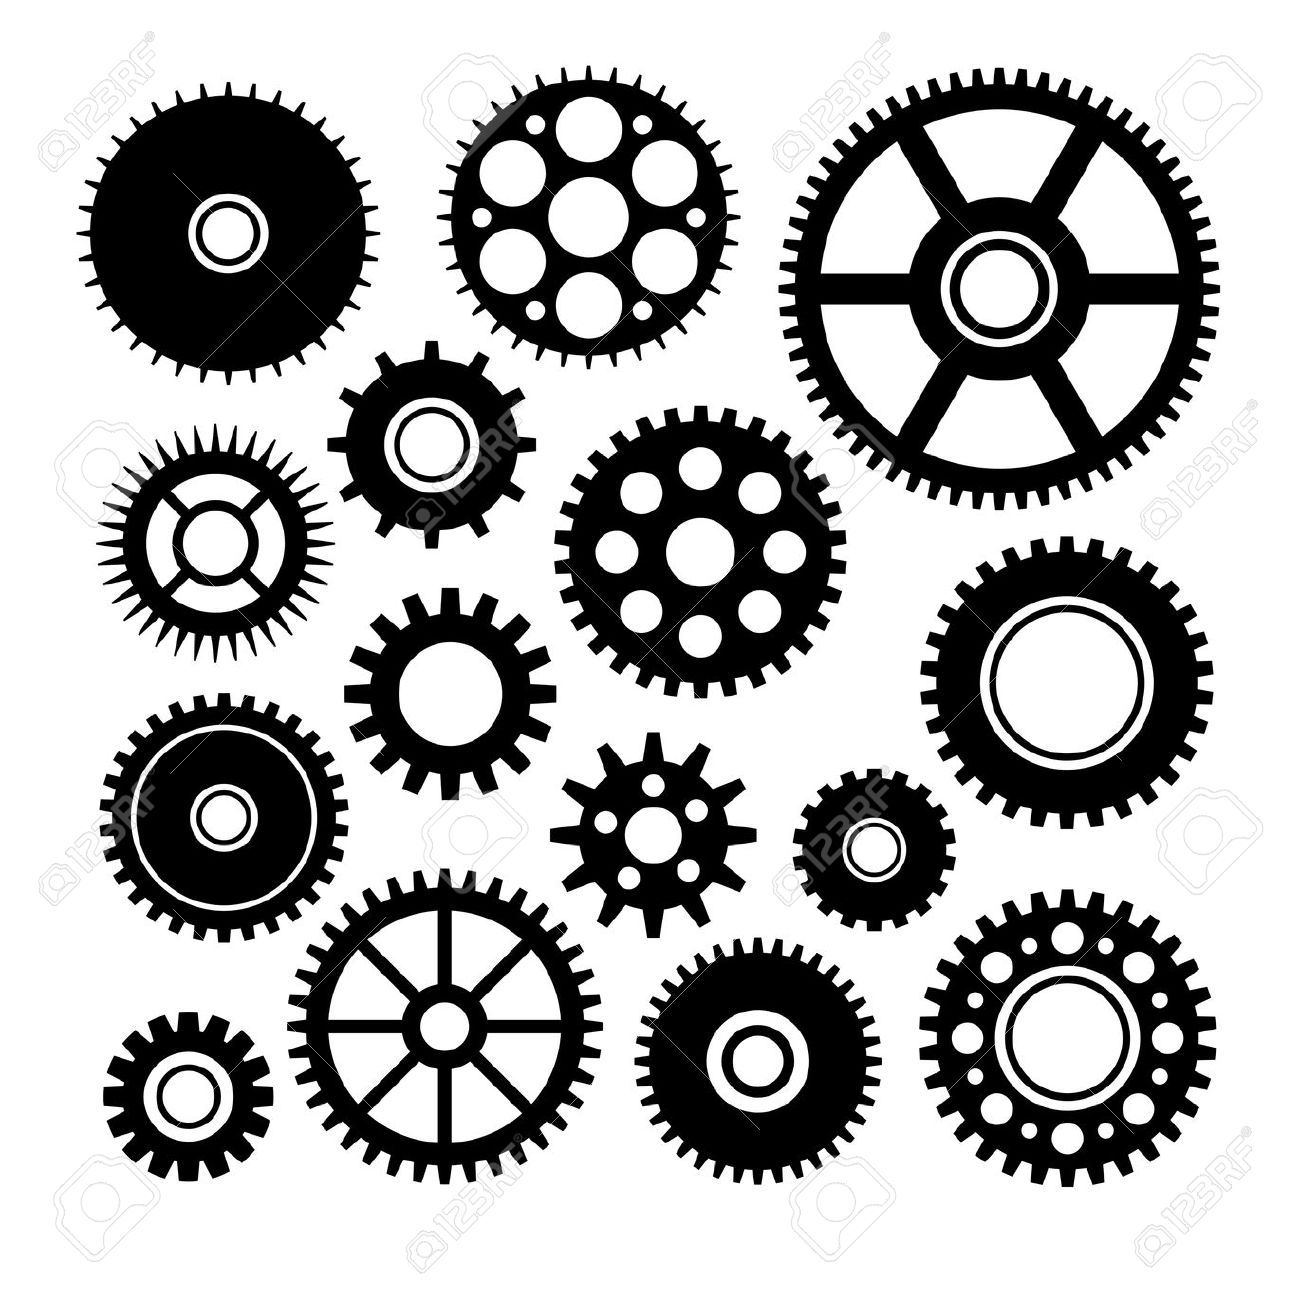 Vector set of some gears | Back Tattoo | Gears, Steampunk ...